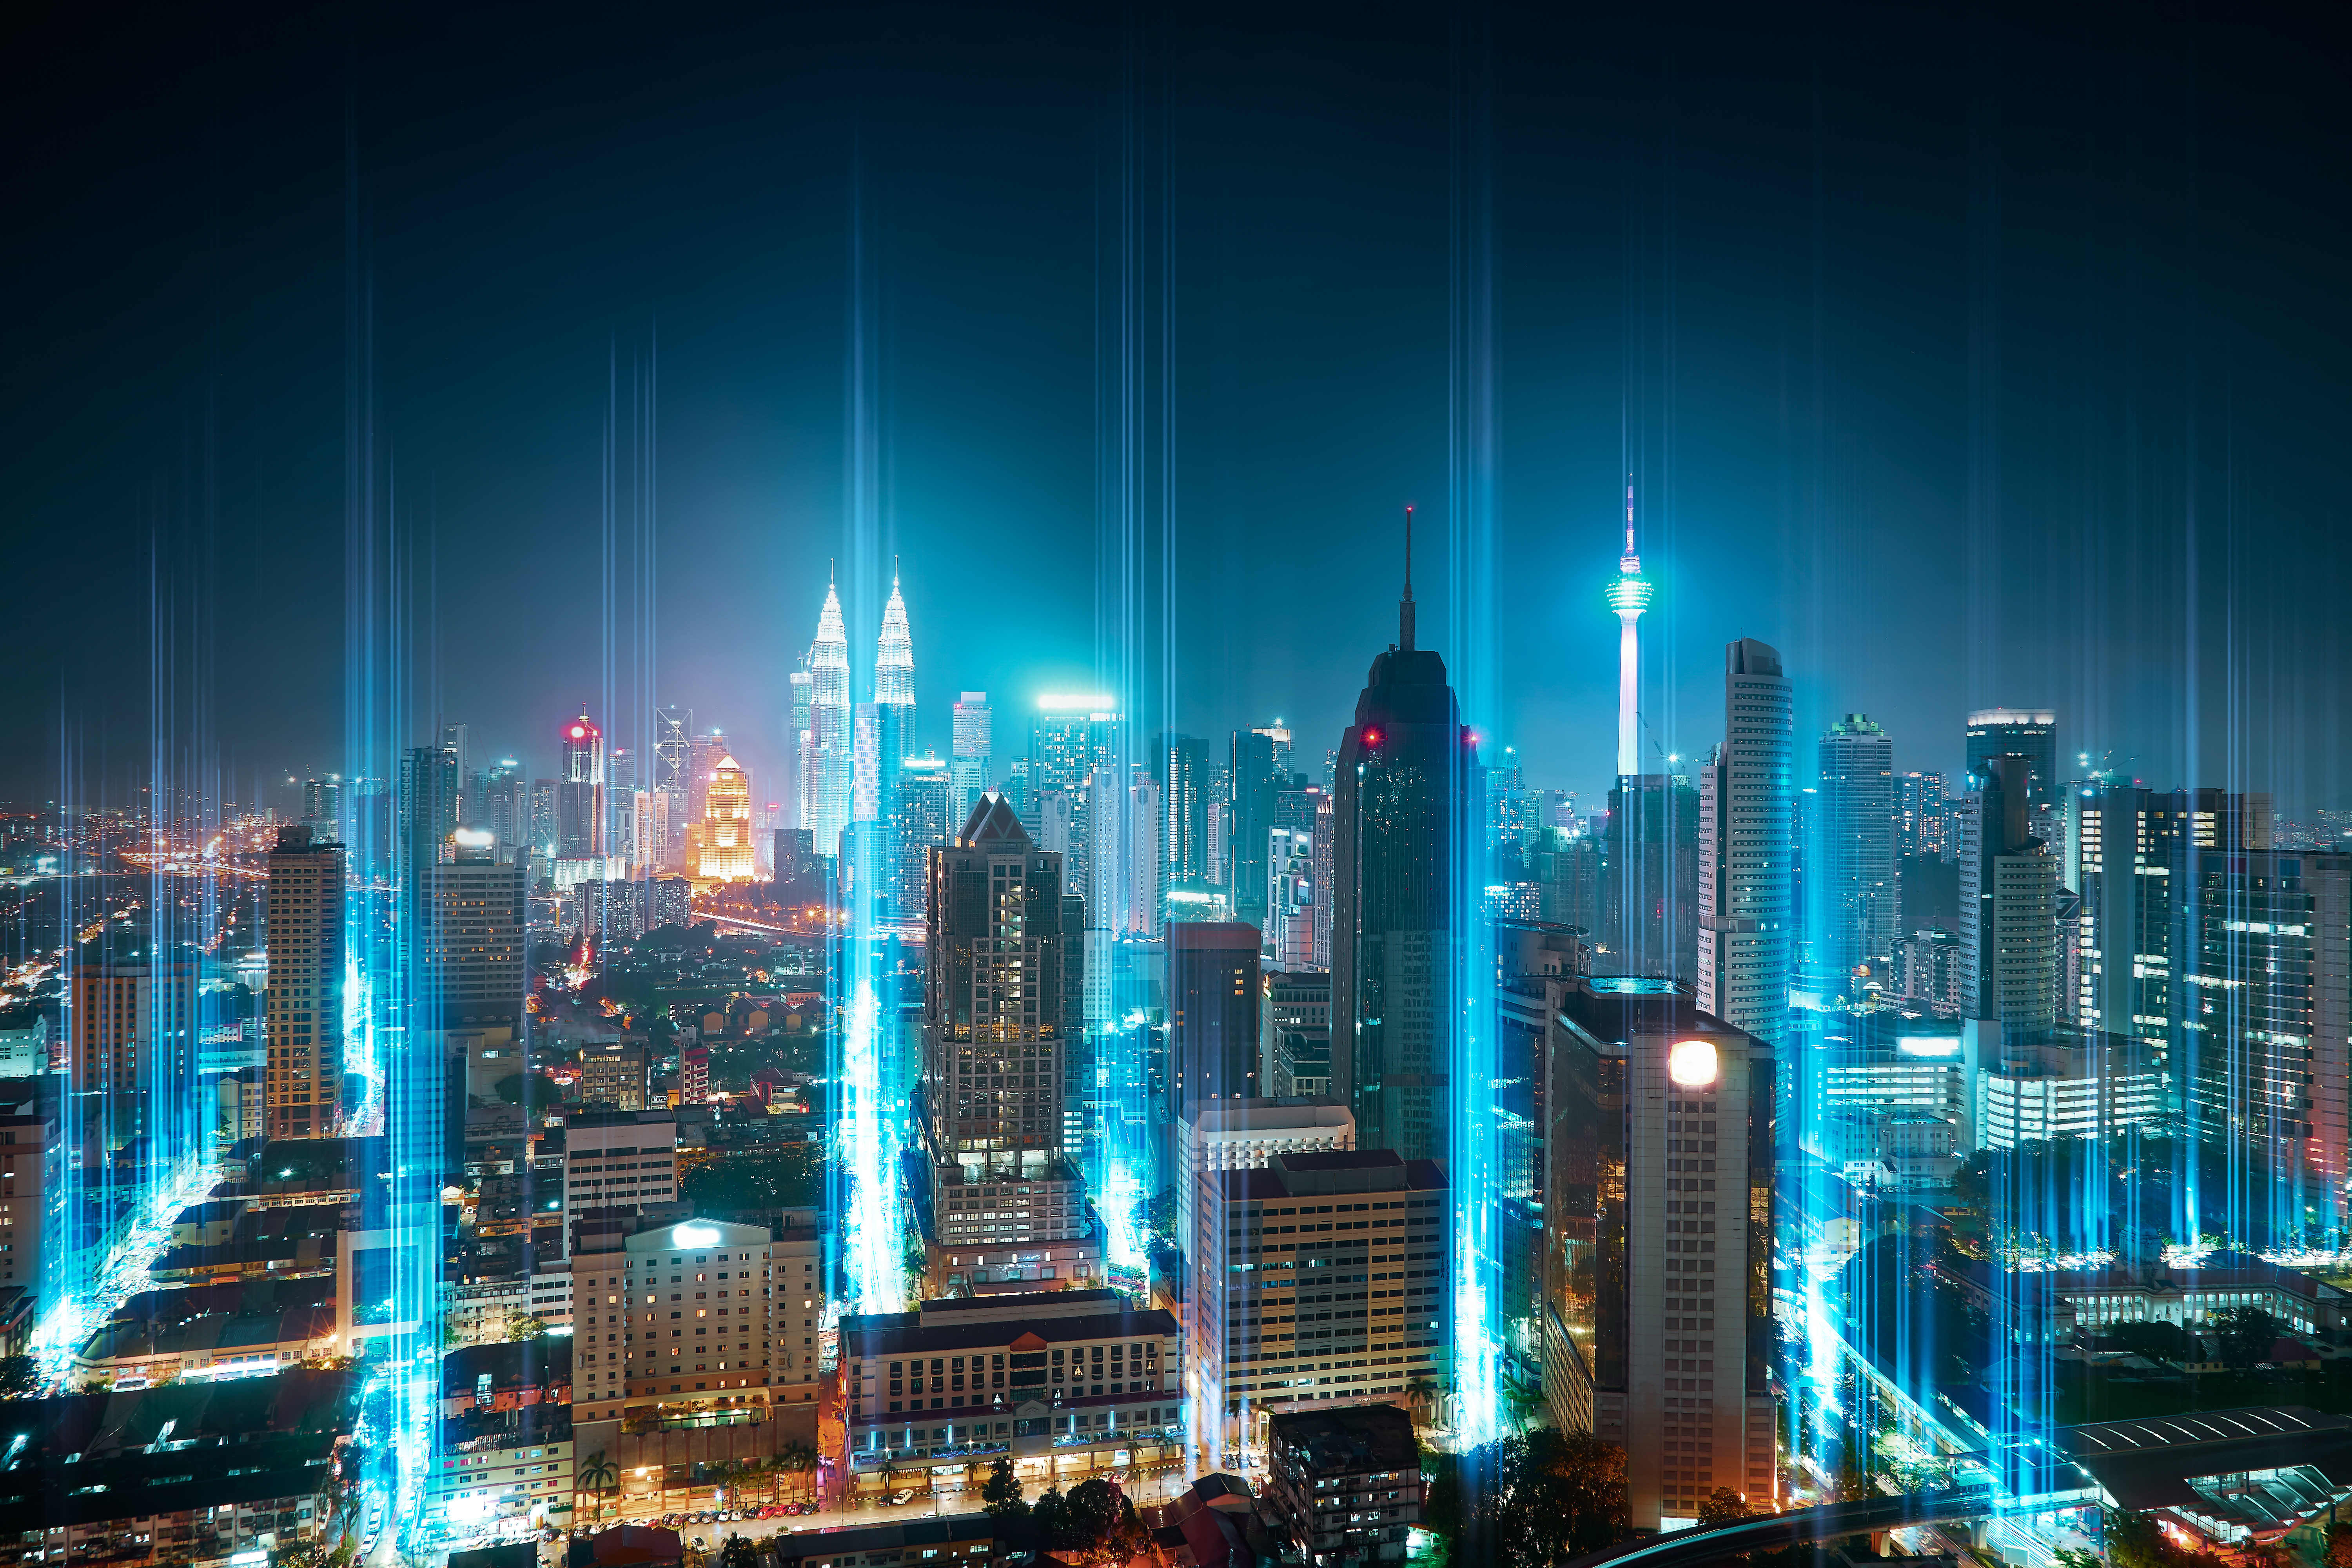 London and Berlin named cities most at risk of cyber attacks